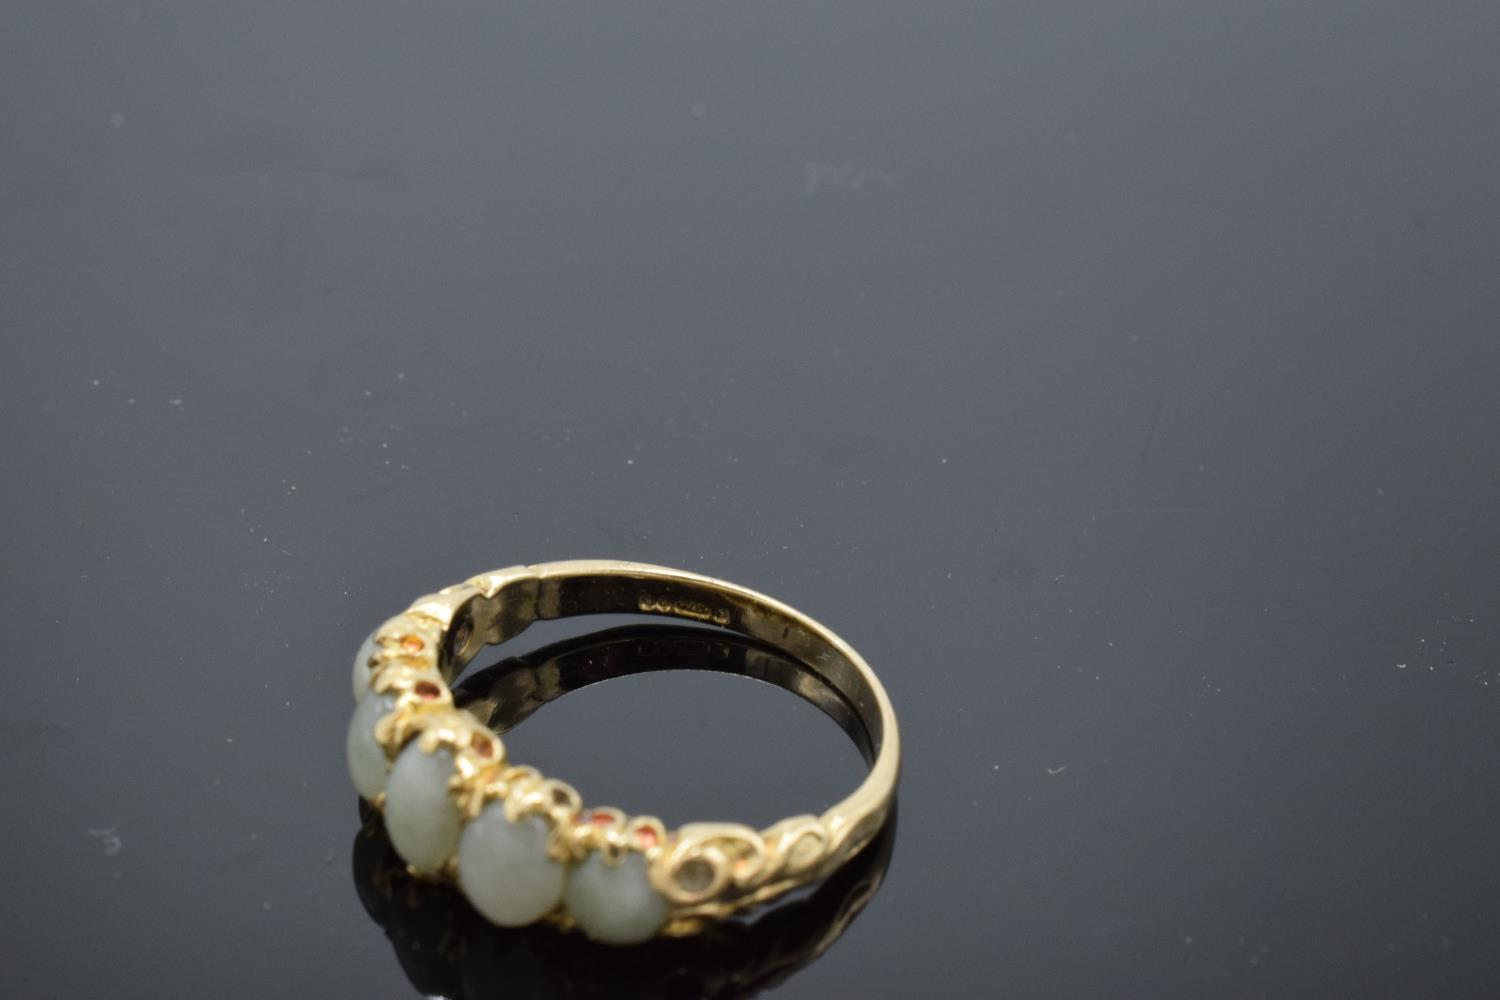 9ct gold ladies ring set with 5 opal stones, UK size N/O. Gross weight 2.6 grams. - Image 3 of 3